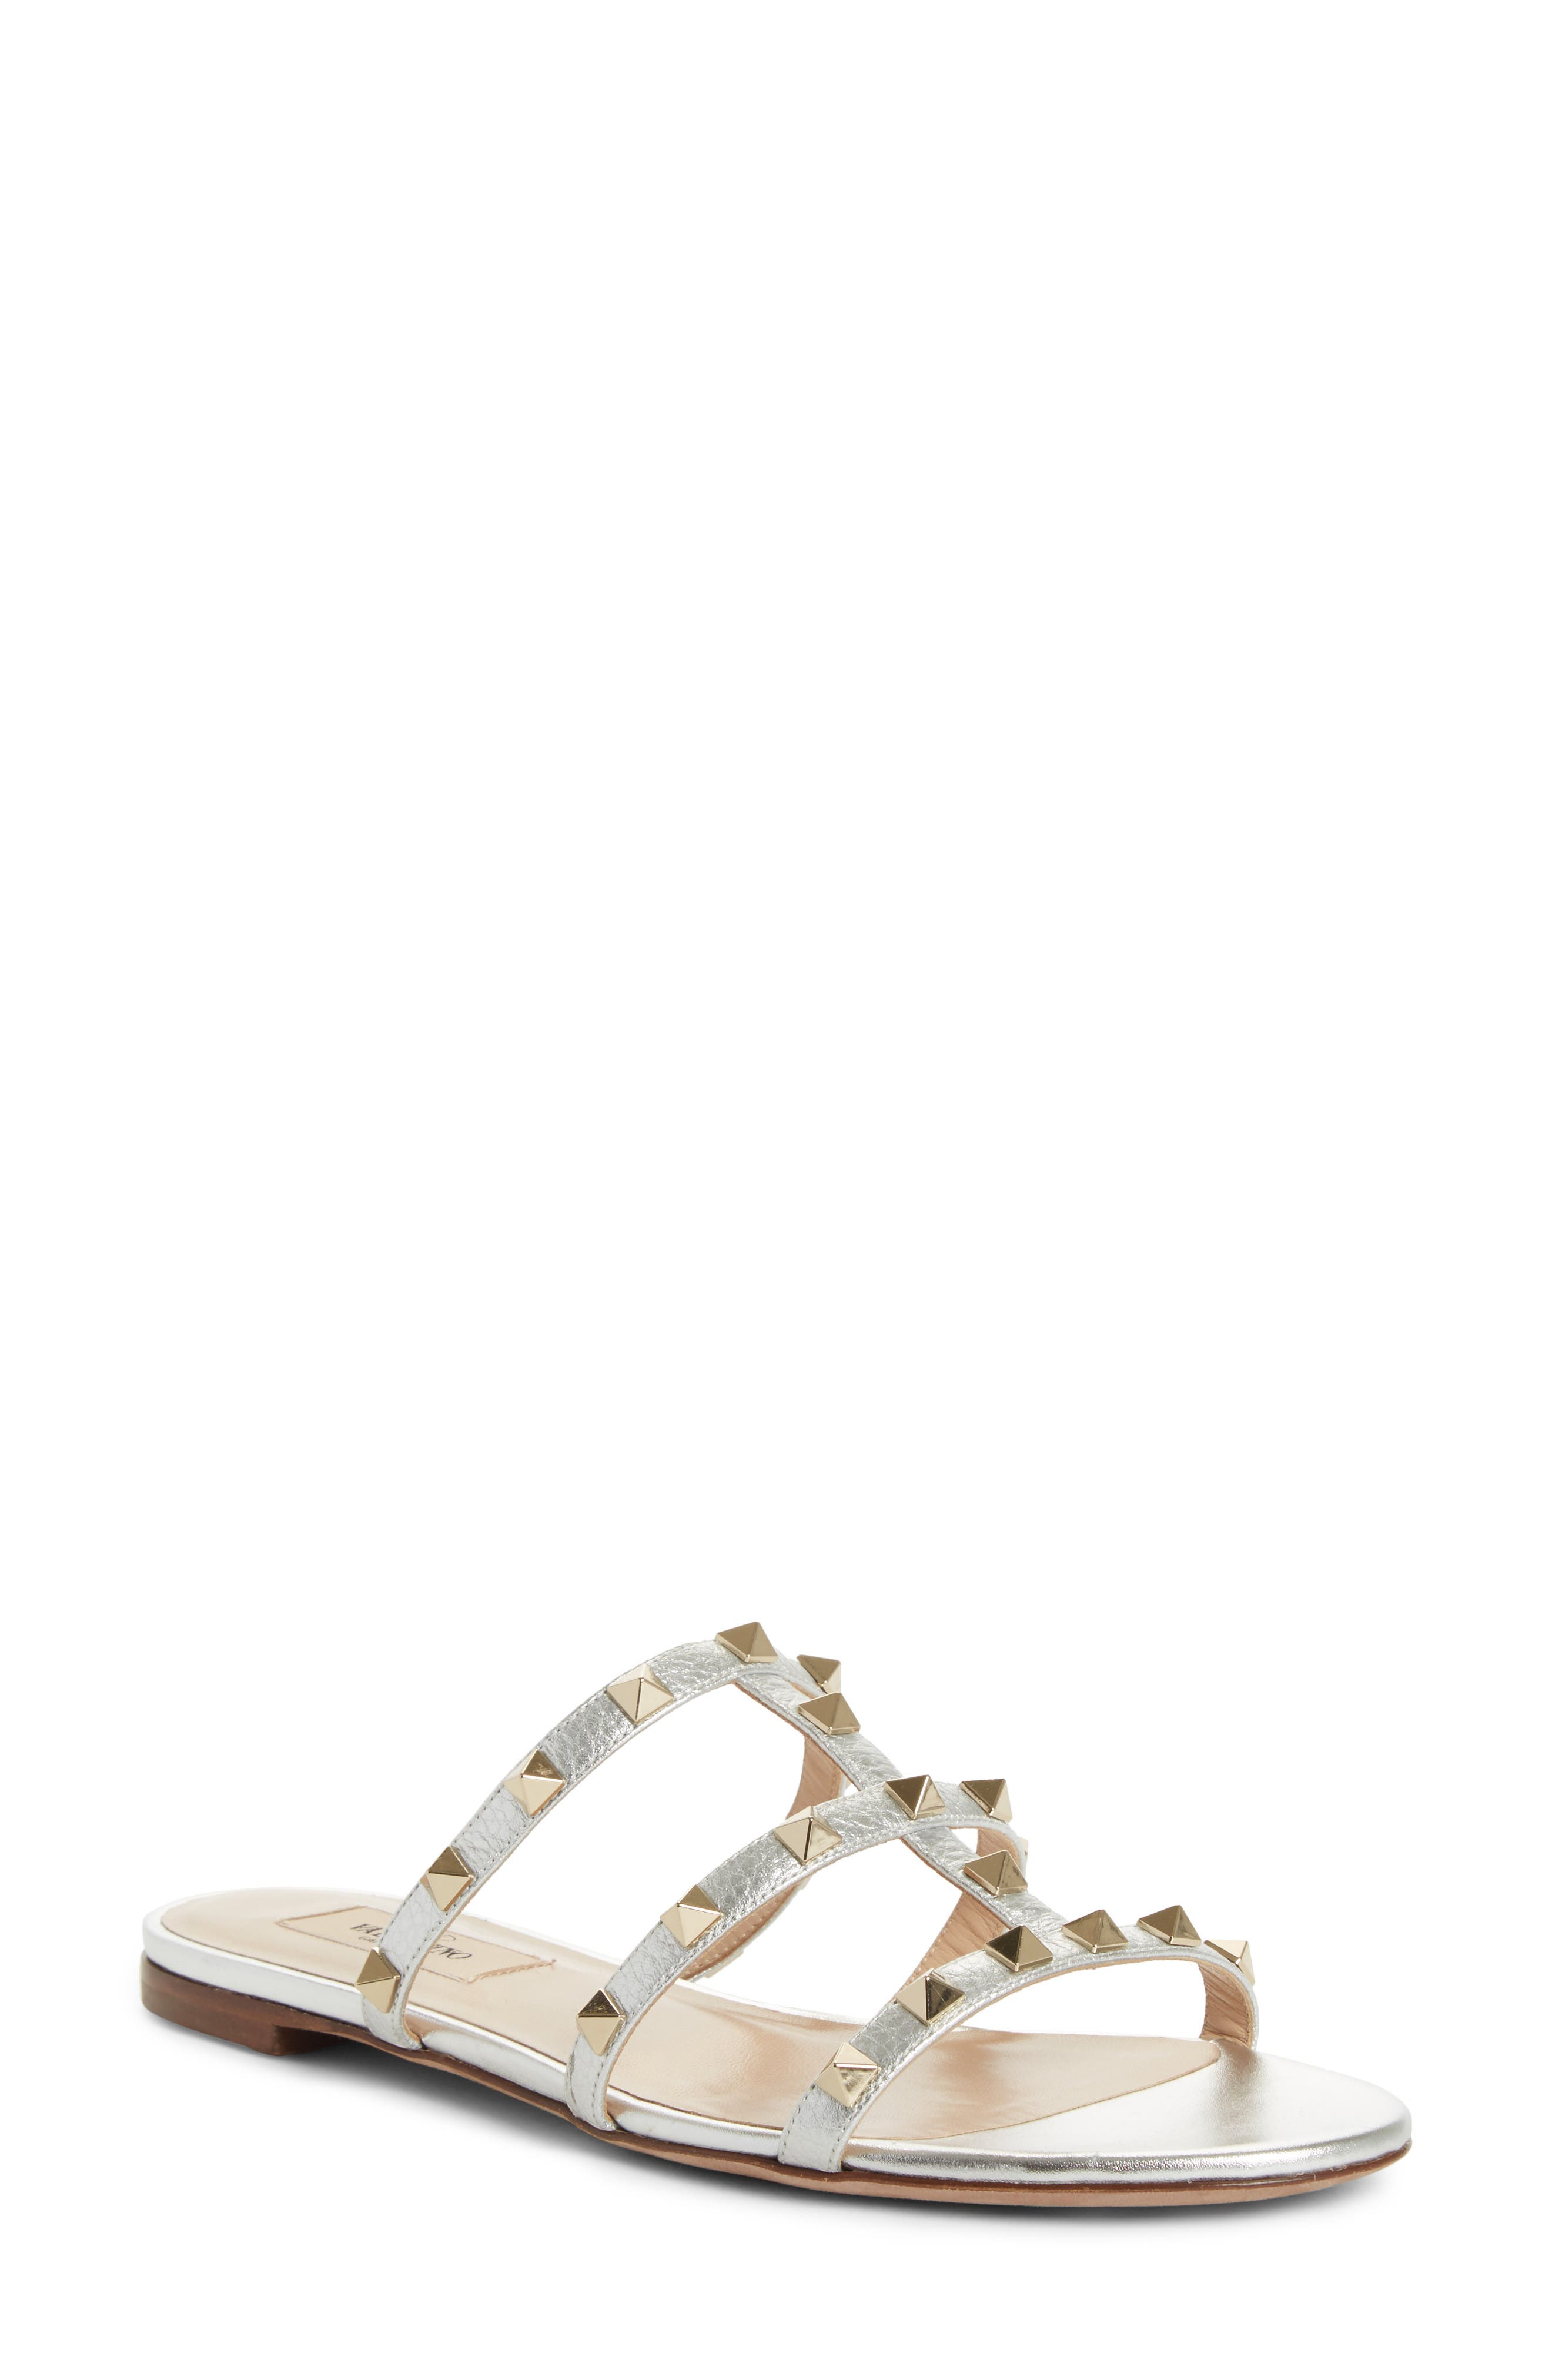 Rockstud Cage Slide Sandal,                             Main thumbnail 1, color,                             METALLIC SILVER